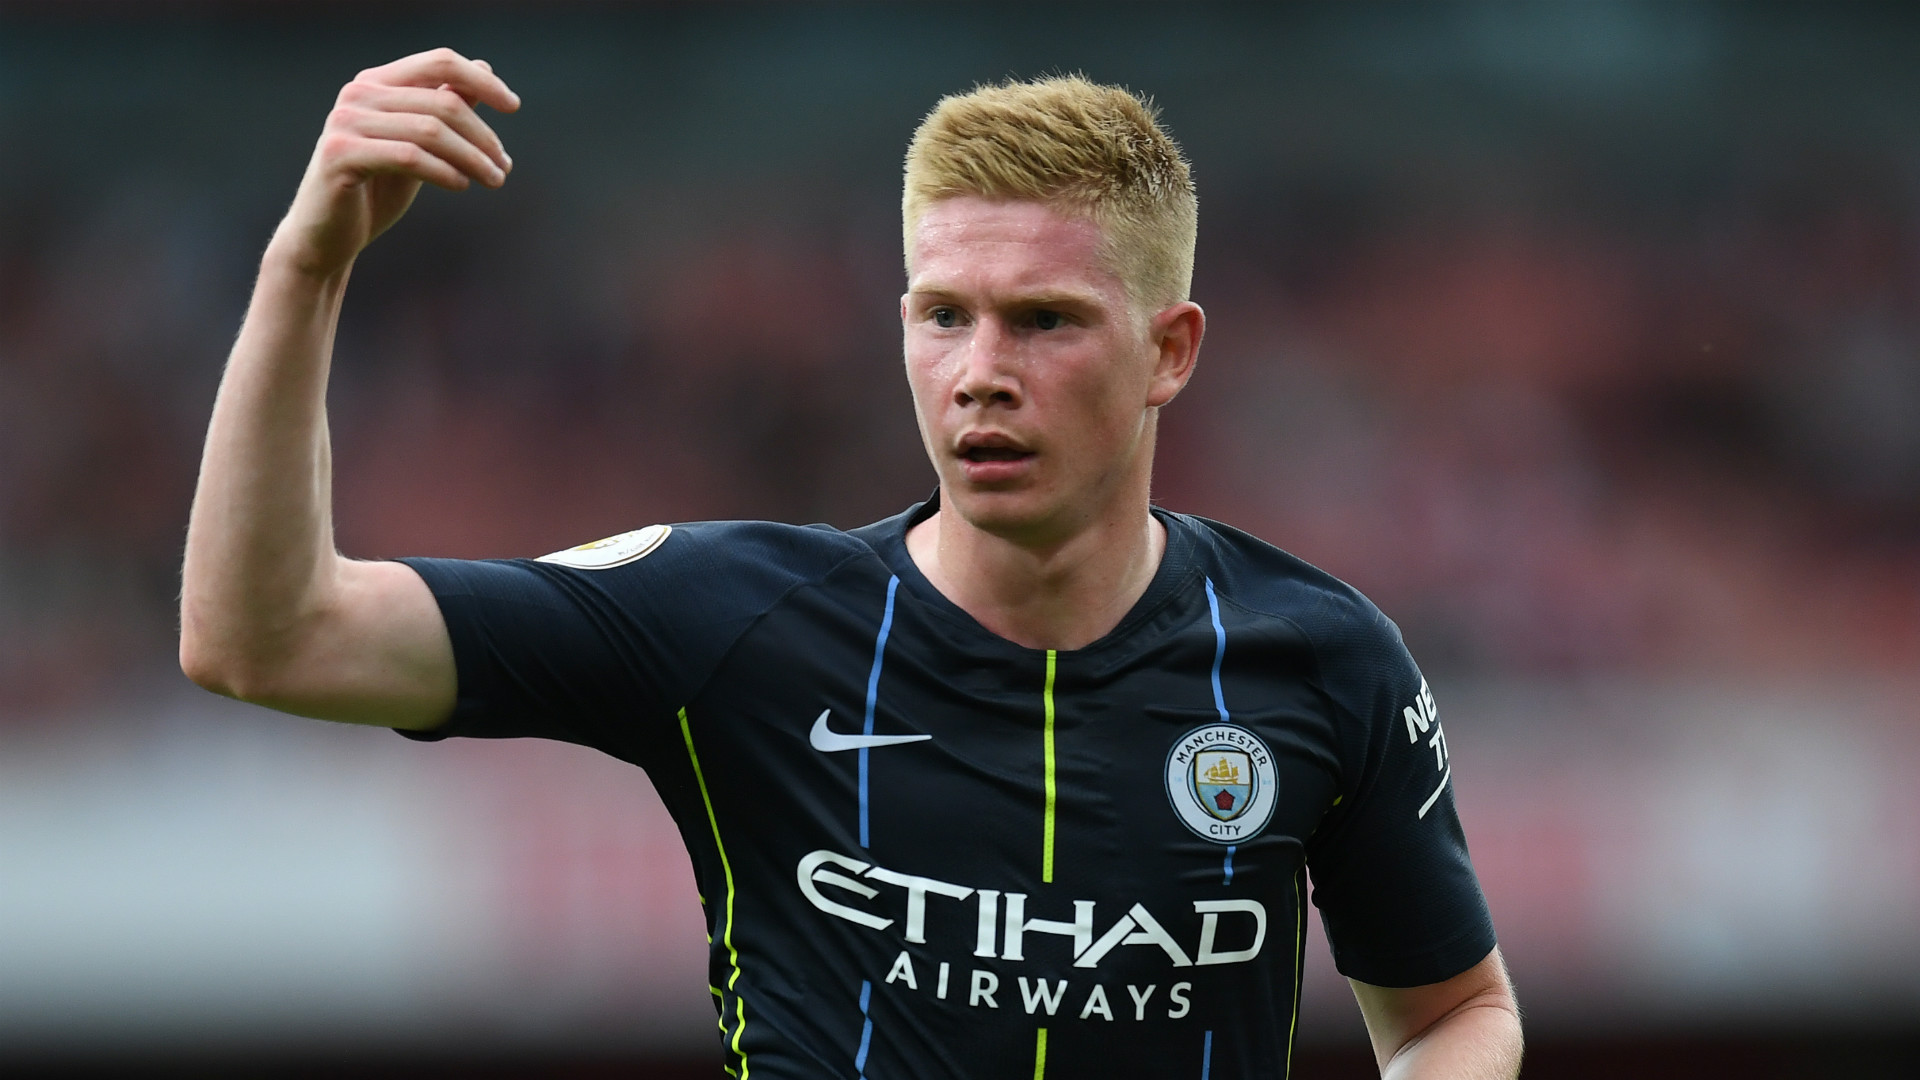 Manchester City's Kevin De Bruyne suffers knee injury in training